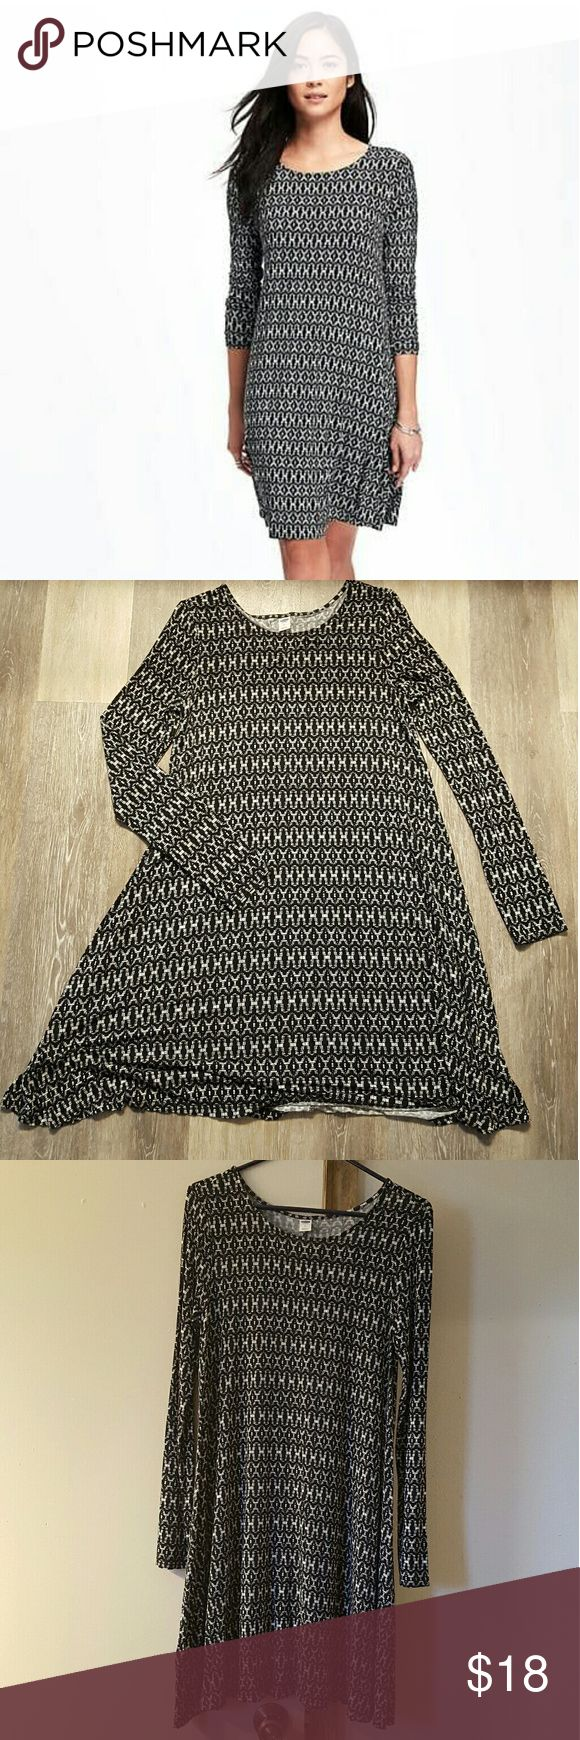 """Old navy Knit swing dress for women Worn it one time..i'm 5""""2 i think i look short in this dress but really feel comfy when worn..if who taller than me think its great for?? Old Navy Dresses Midi"""